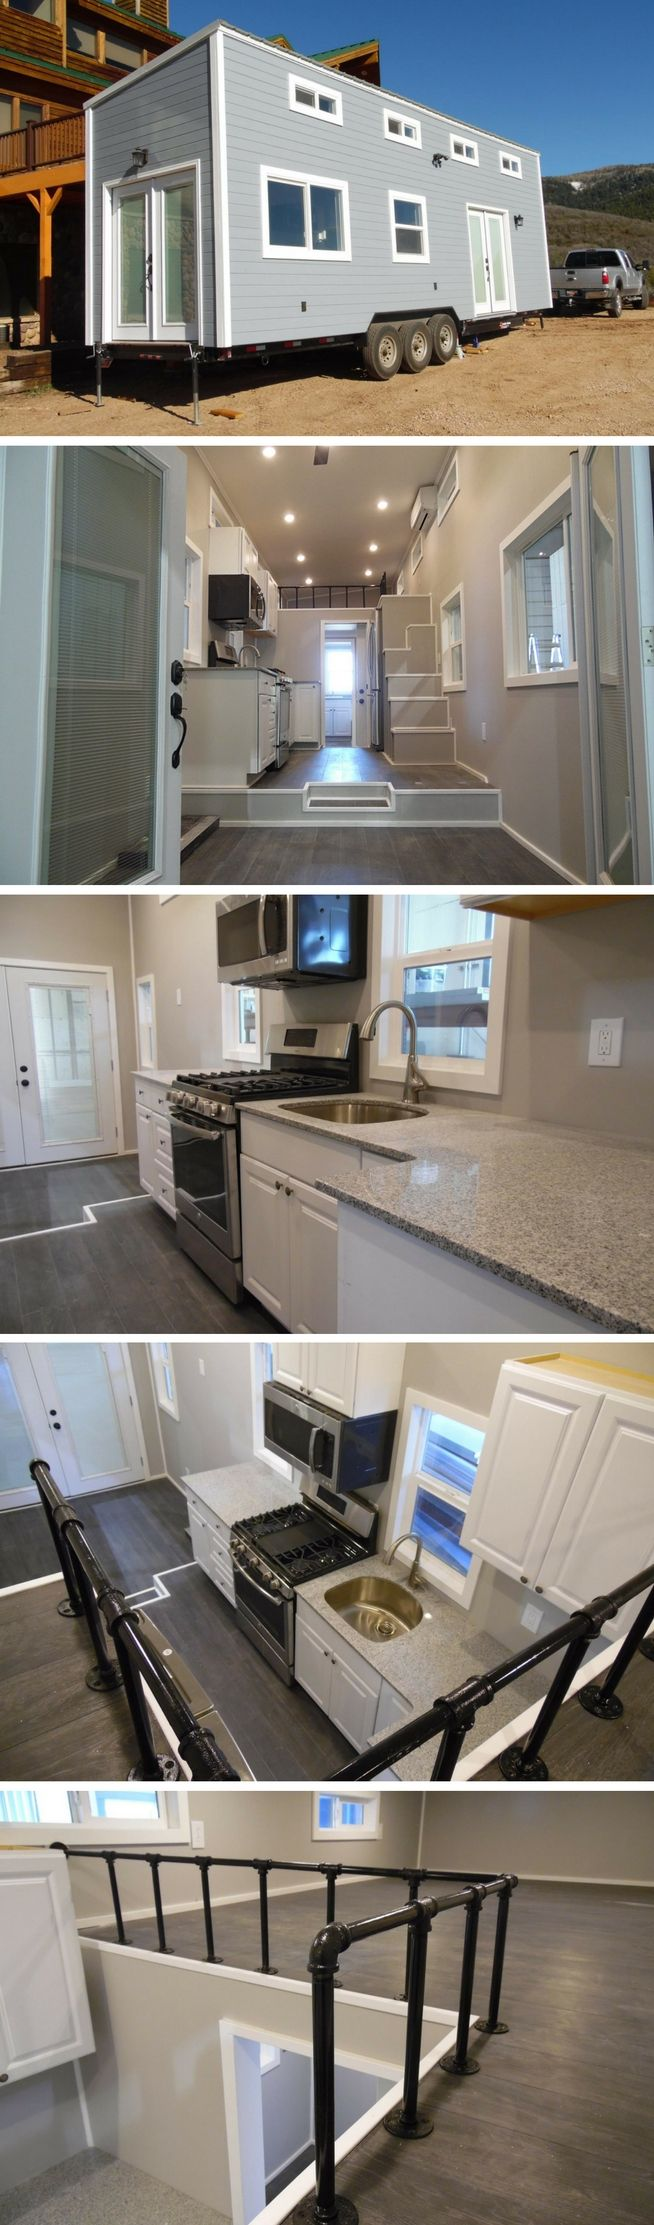 Home interior for small house  best tiny home images on pinterest  tiny little houses tiny